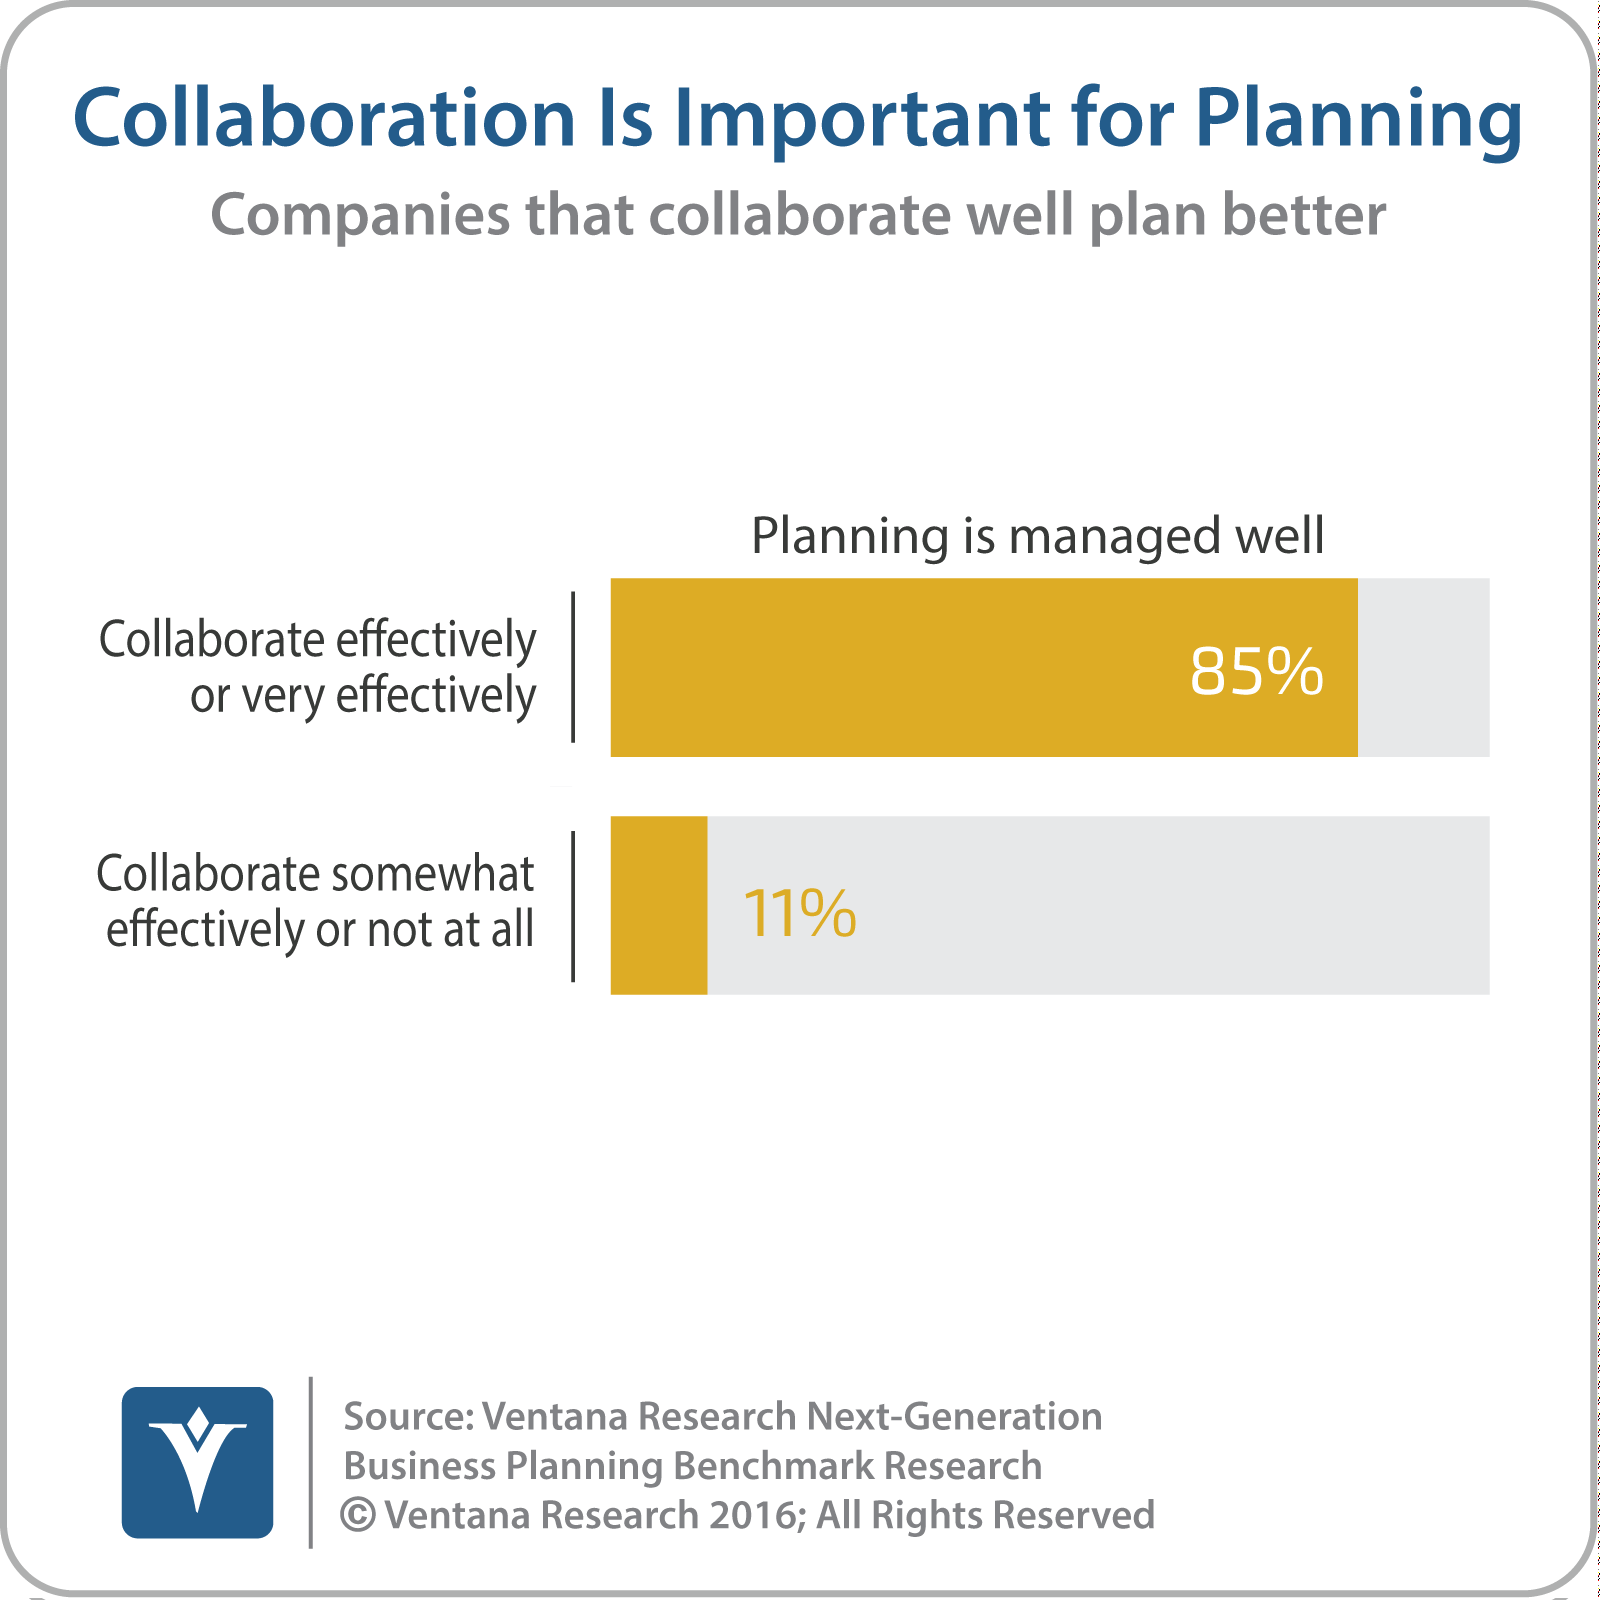 vr_NGBP_03_collaboration_is_important_for_planning_updated2.png